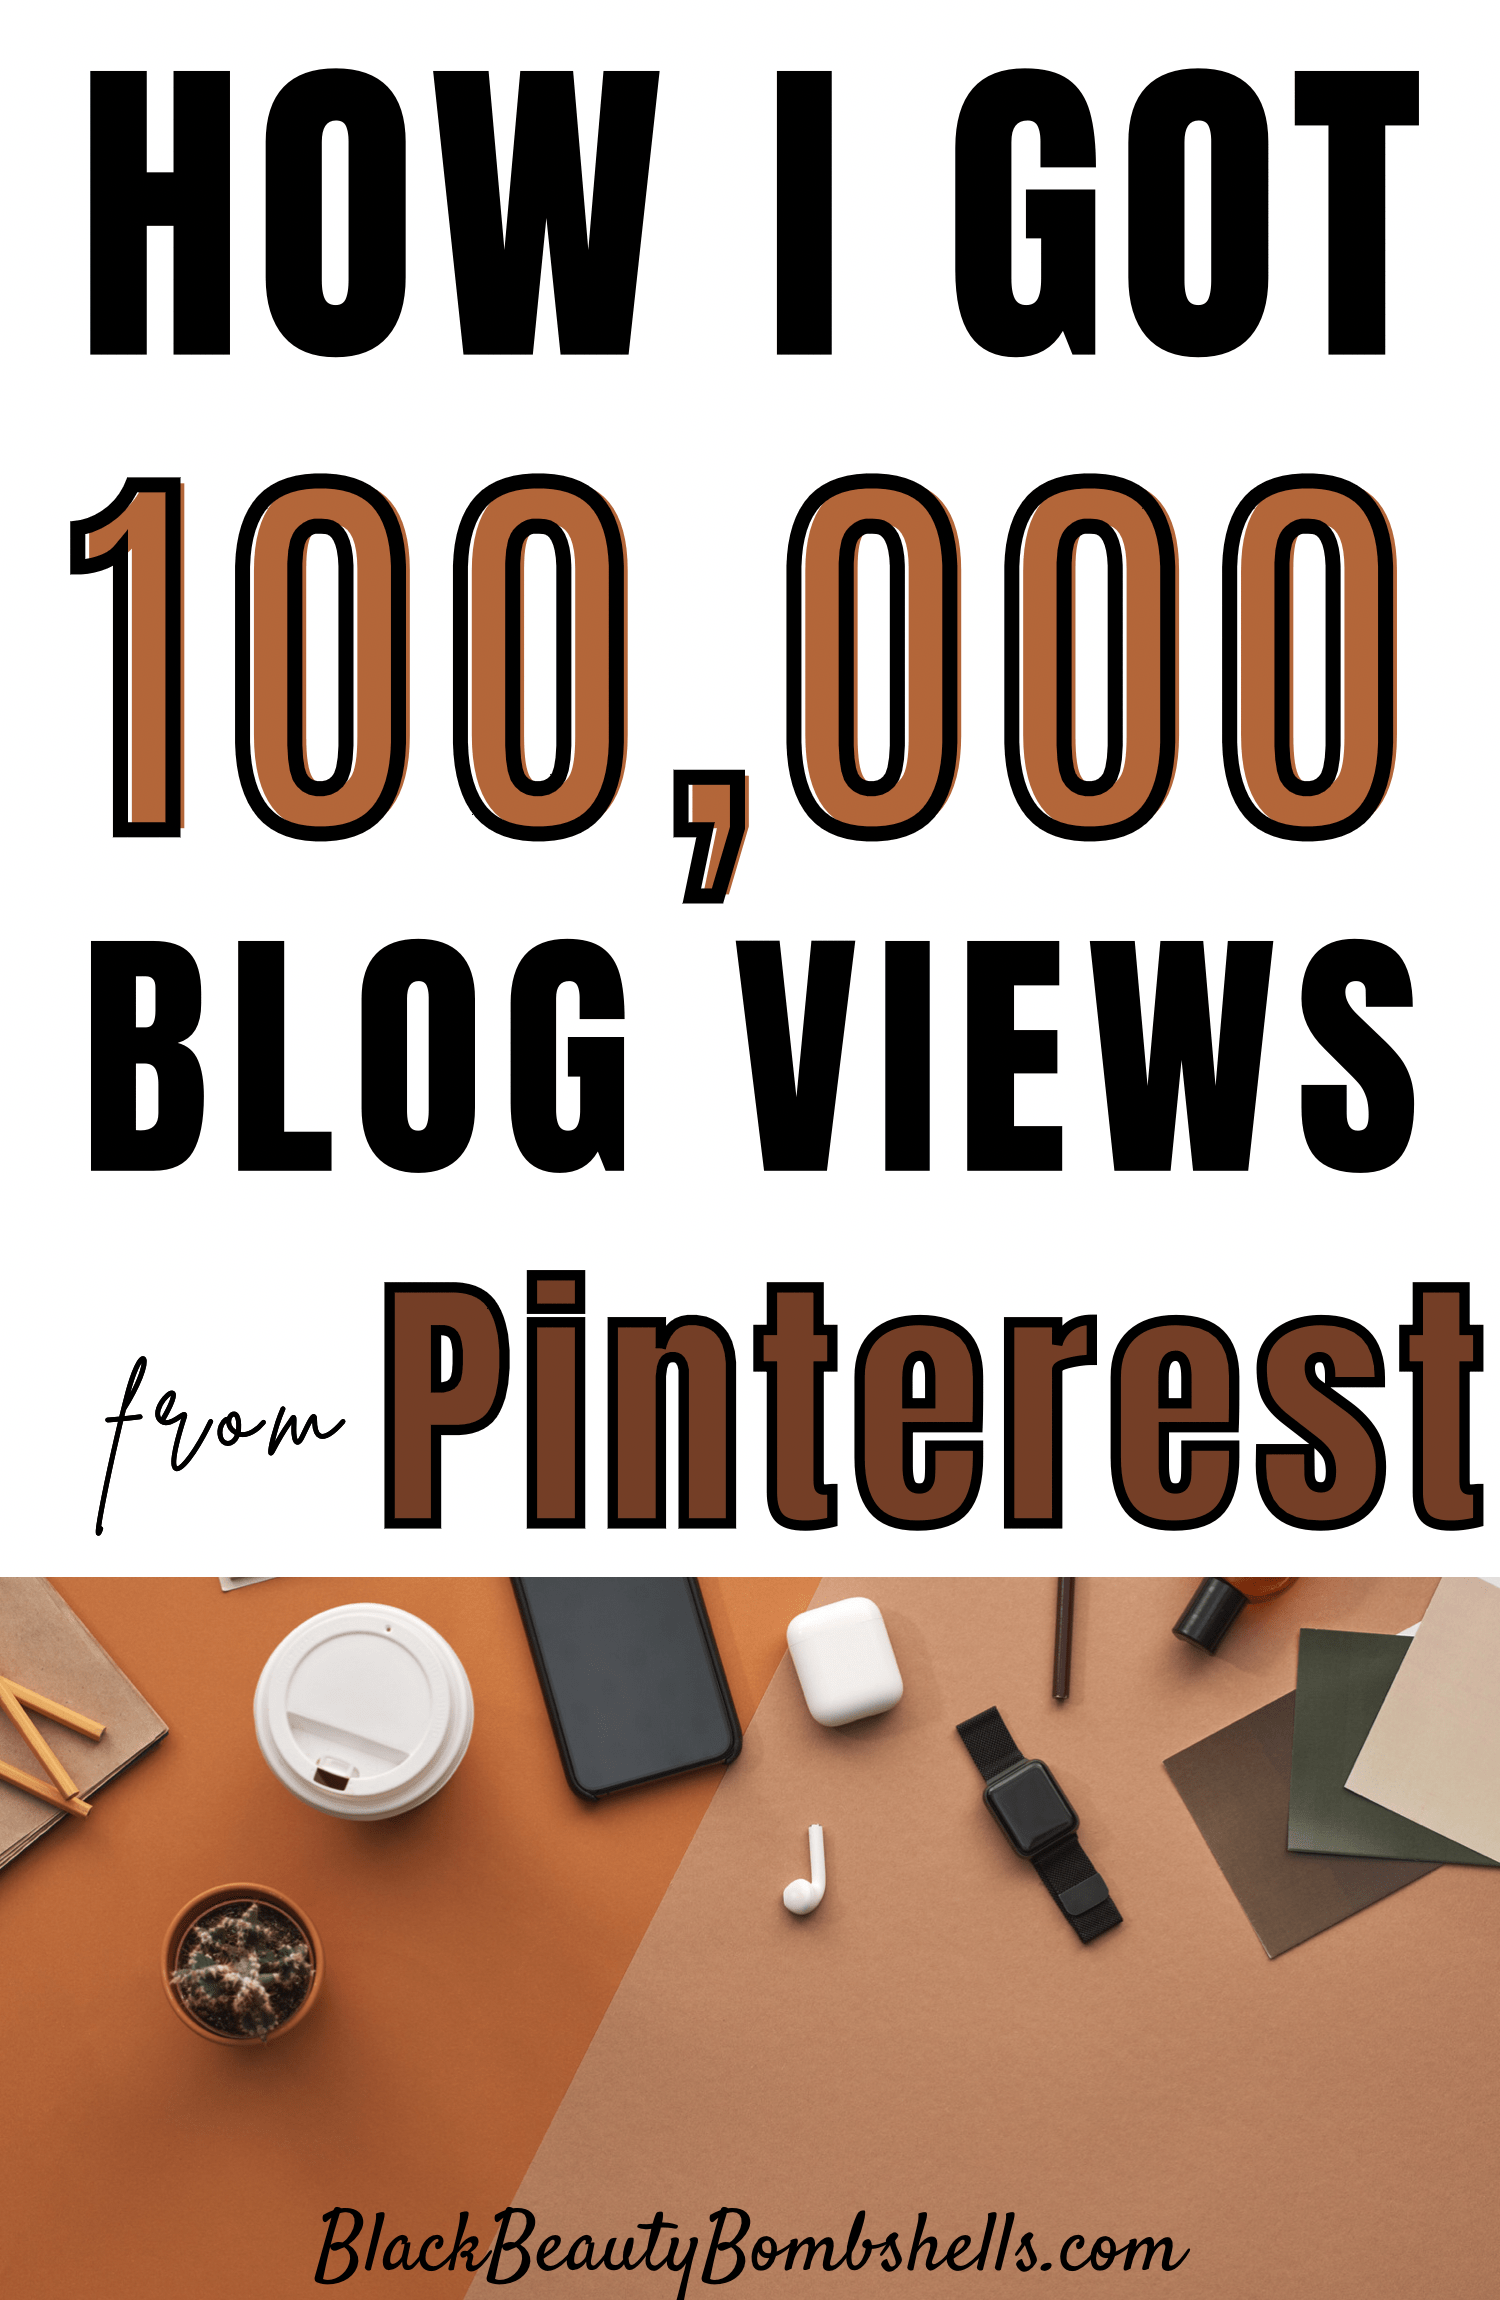 How I got 100,000 Blog Page Views Using Pinterest in 5 Months